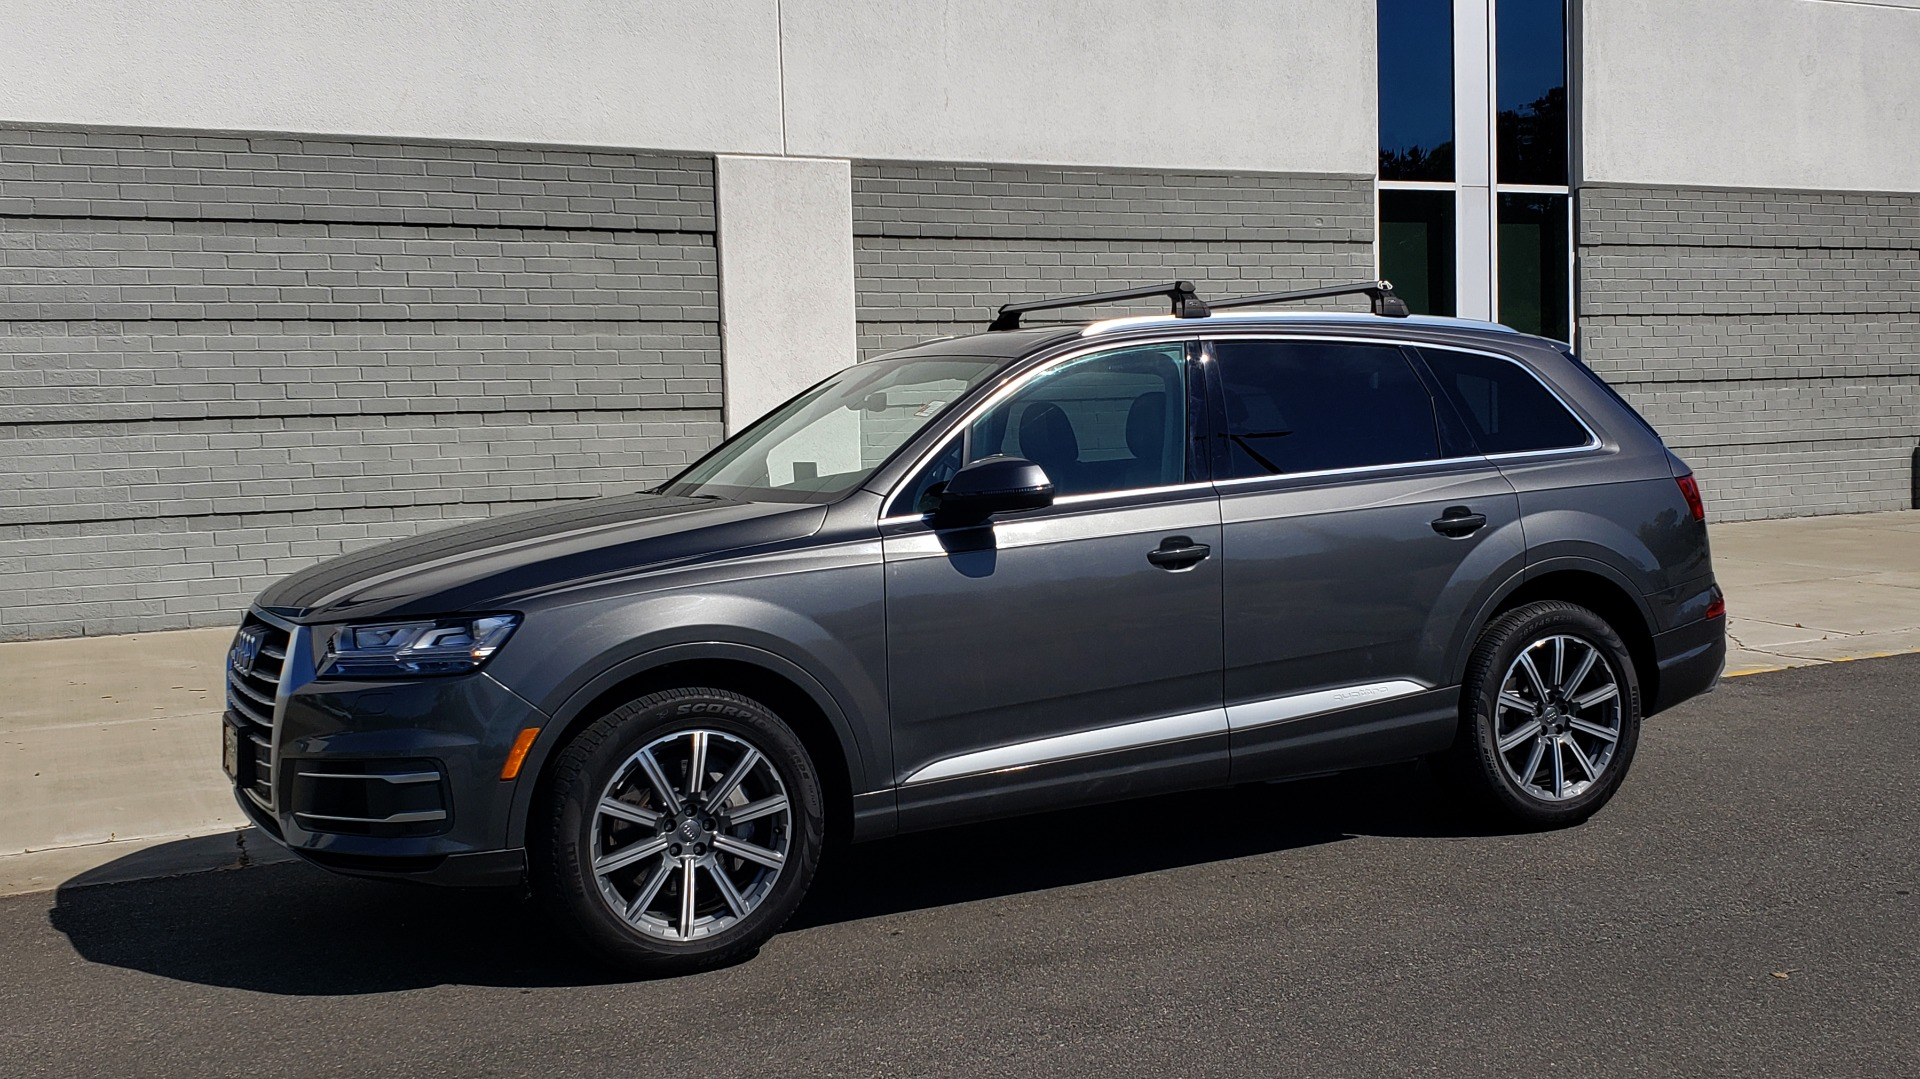 Used 2018 Audi Q7 PREMIUM PLUS TIPTRONIC / NAV / SUNROOF / VISION PKG / CLD WTHR / REARVIEW for sale $44,395 at Formula Imports in Charlotte NC 28227 3